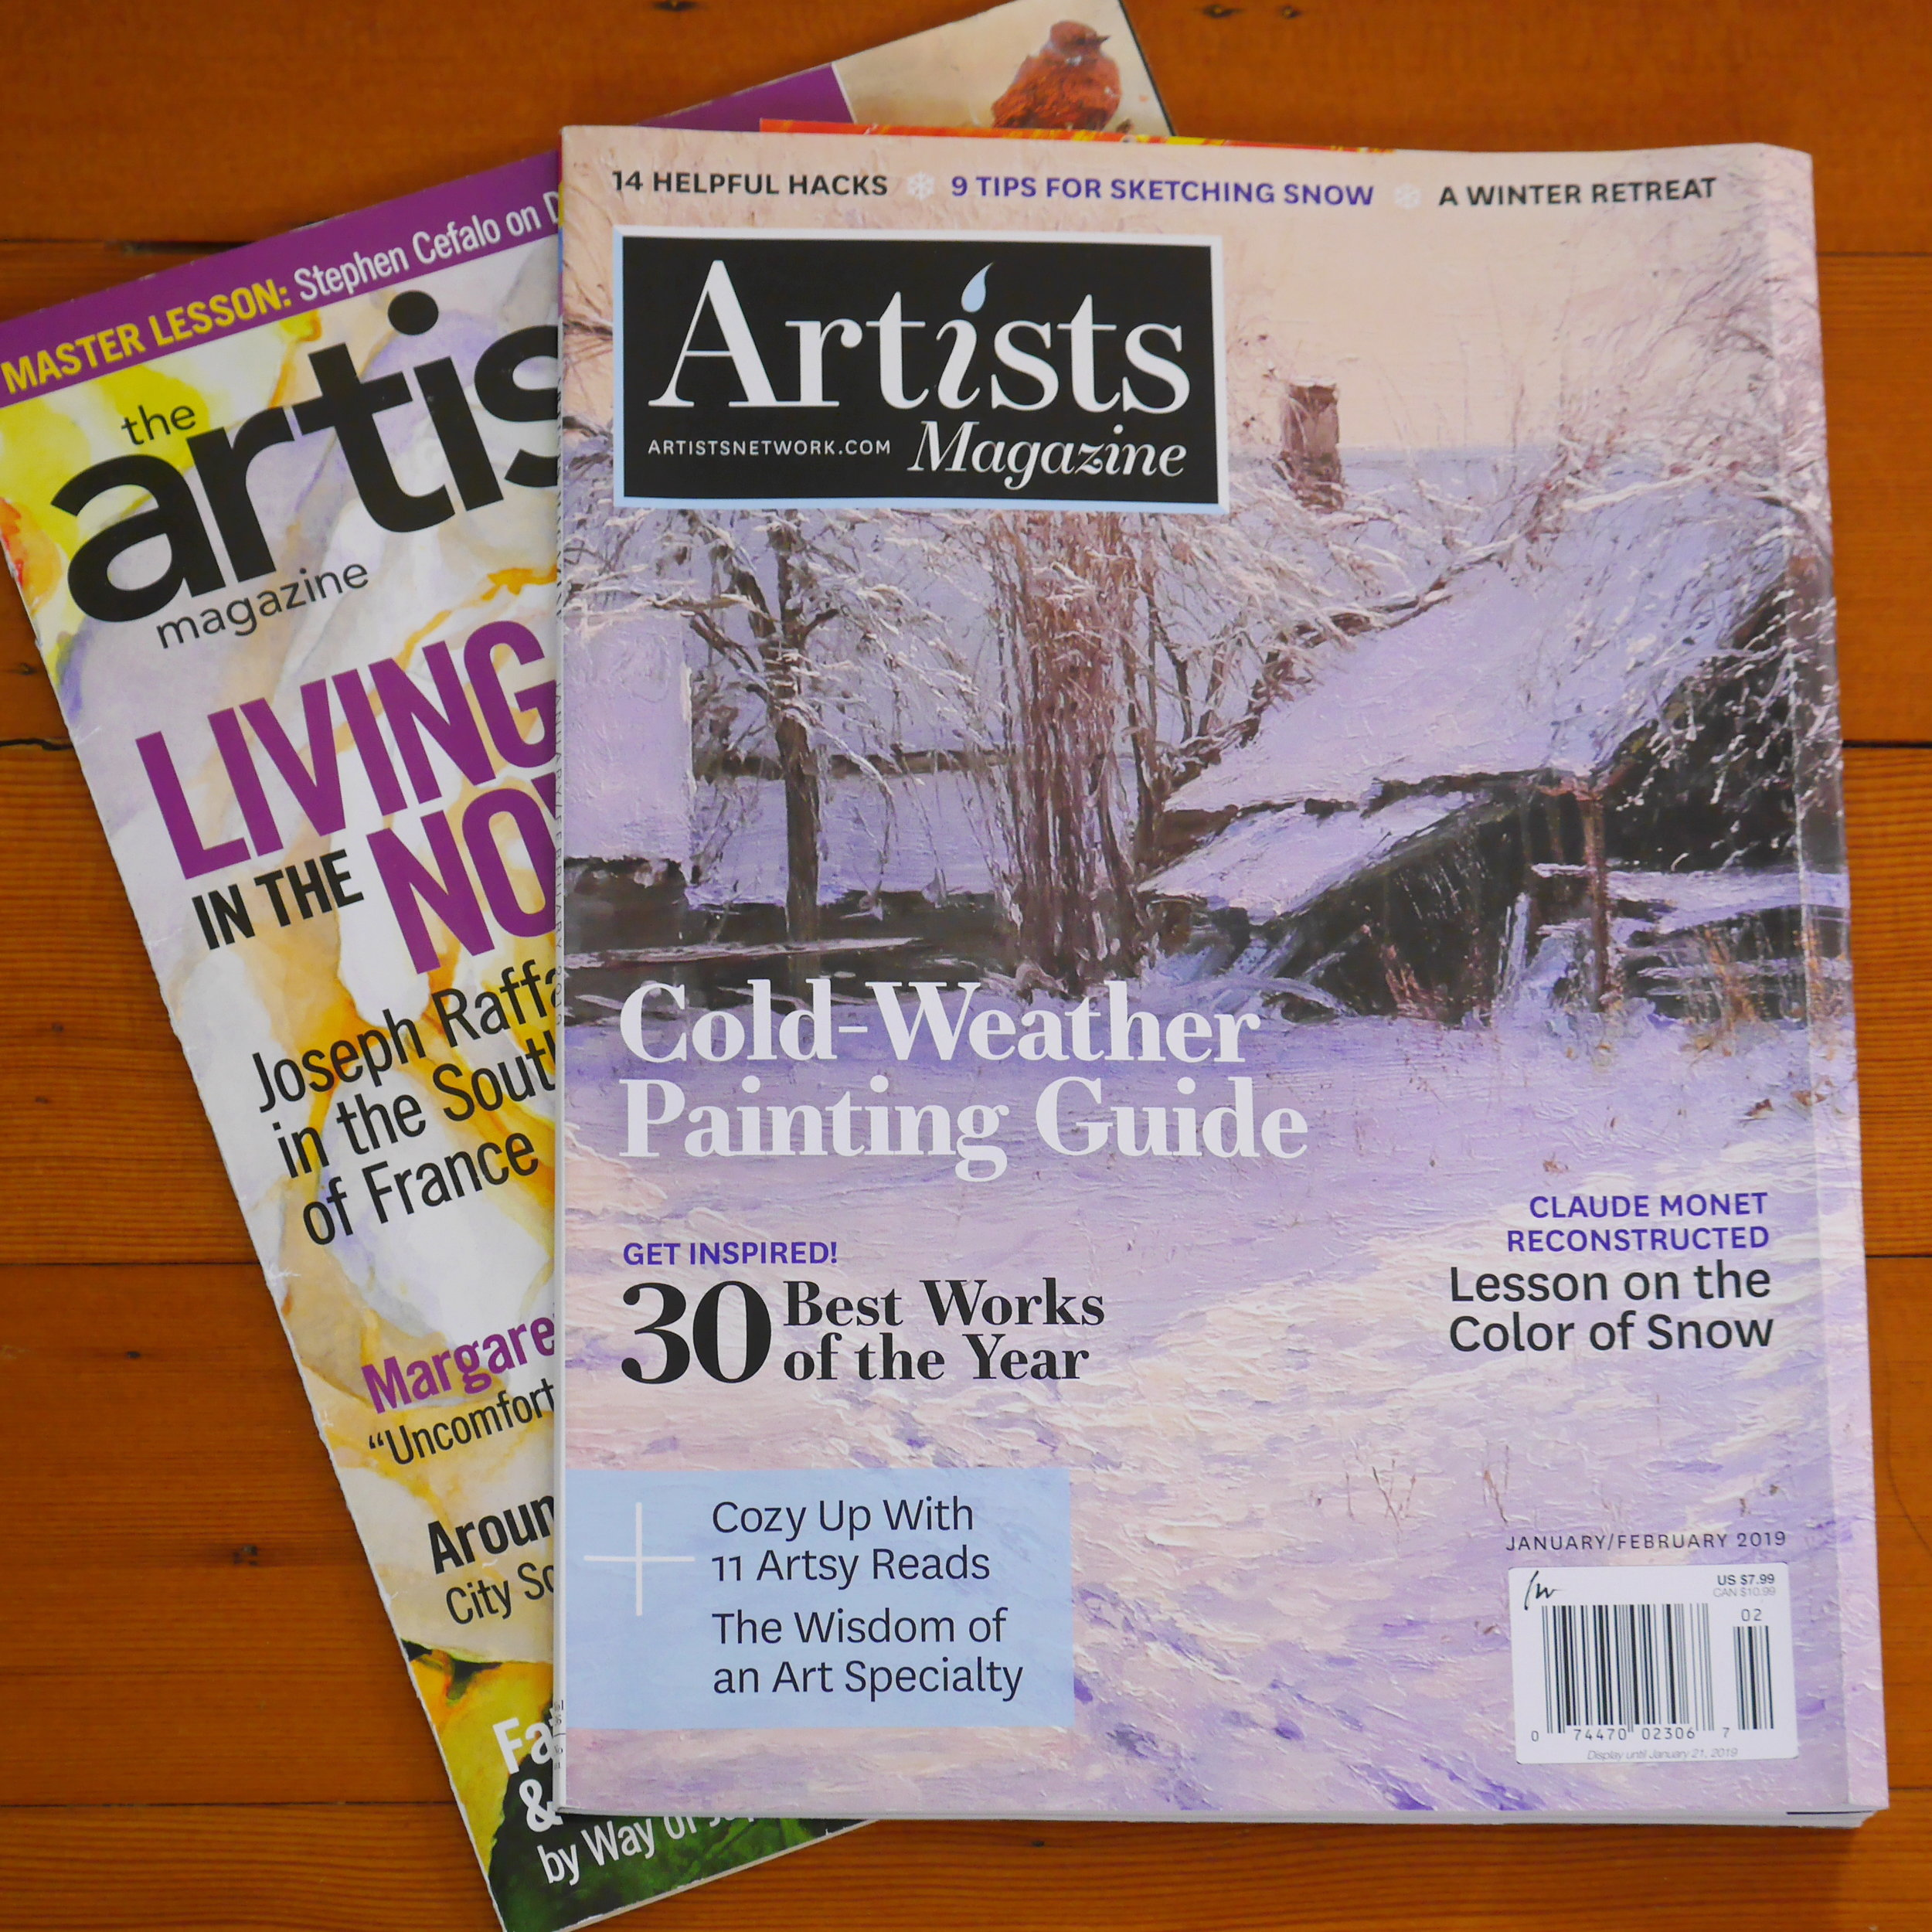 4. Artist's magazine  - US based magazine  - 6 issues per year  - Artist interview  - Art techniques  - website: http://subscriptions.theartistsmagazine.com/